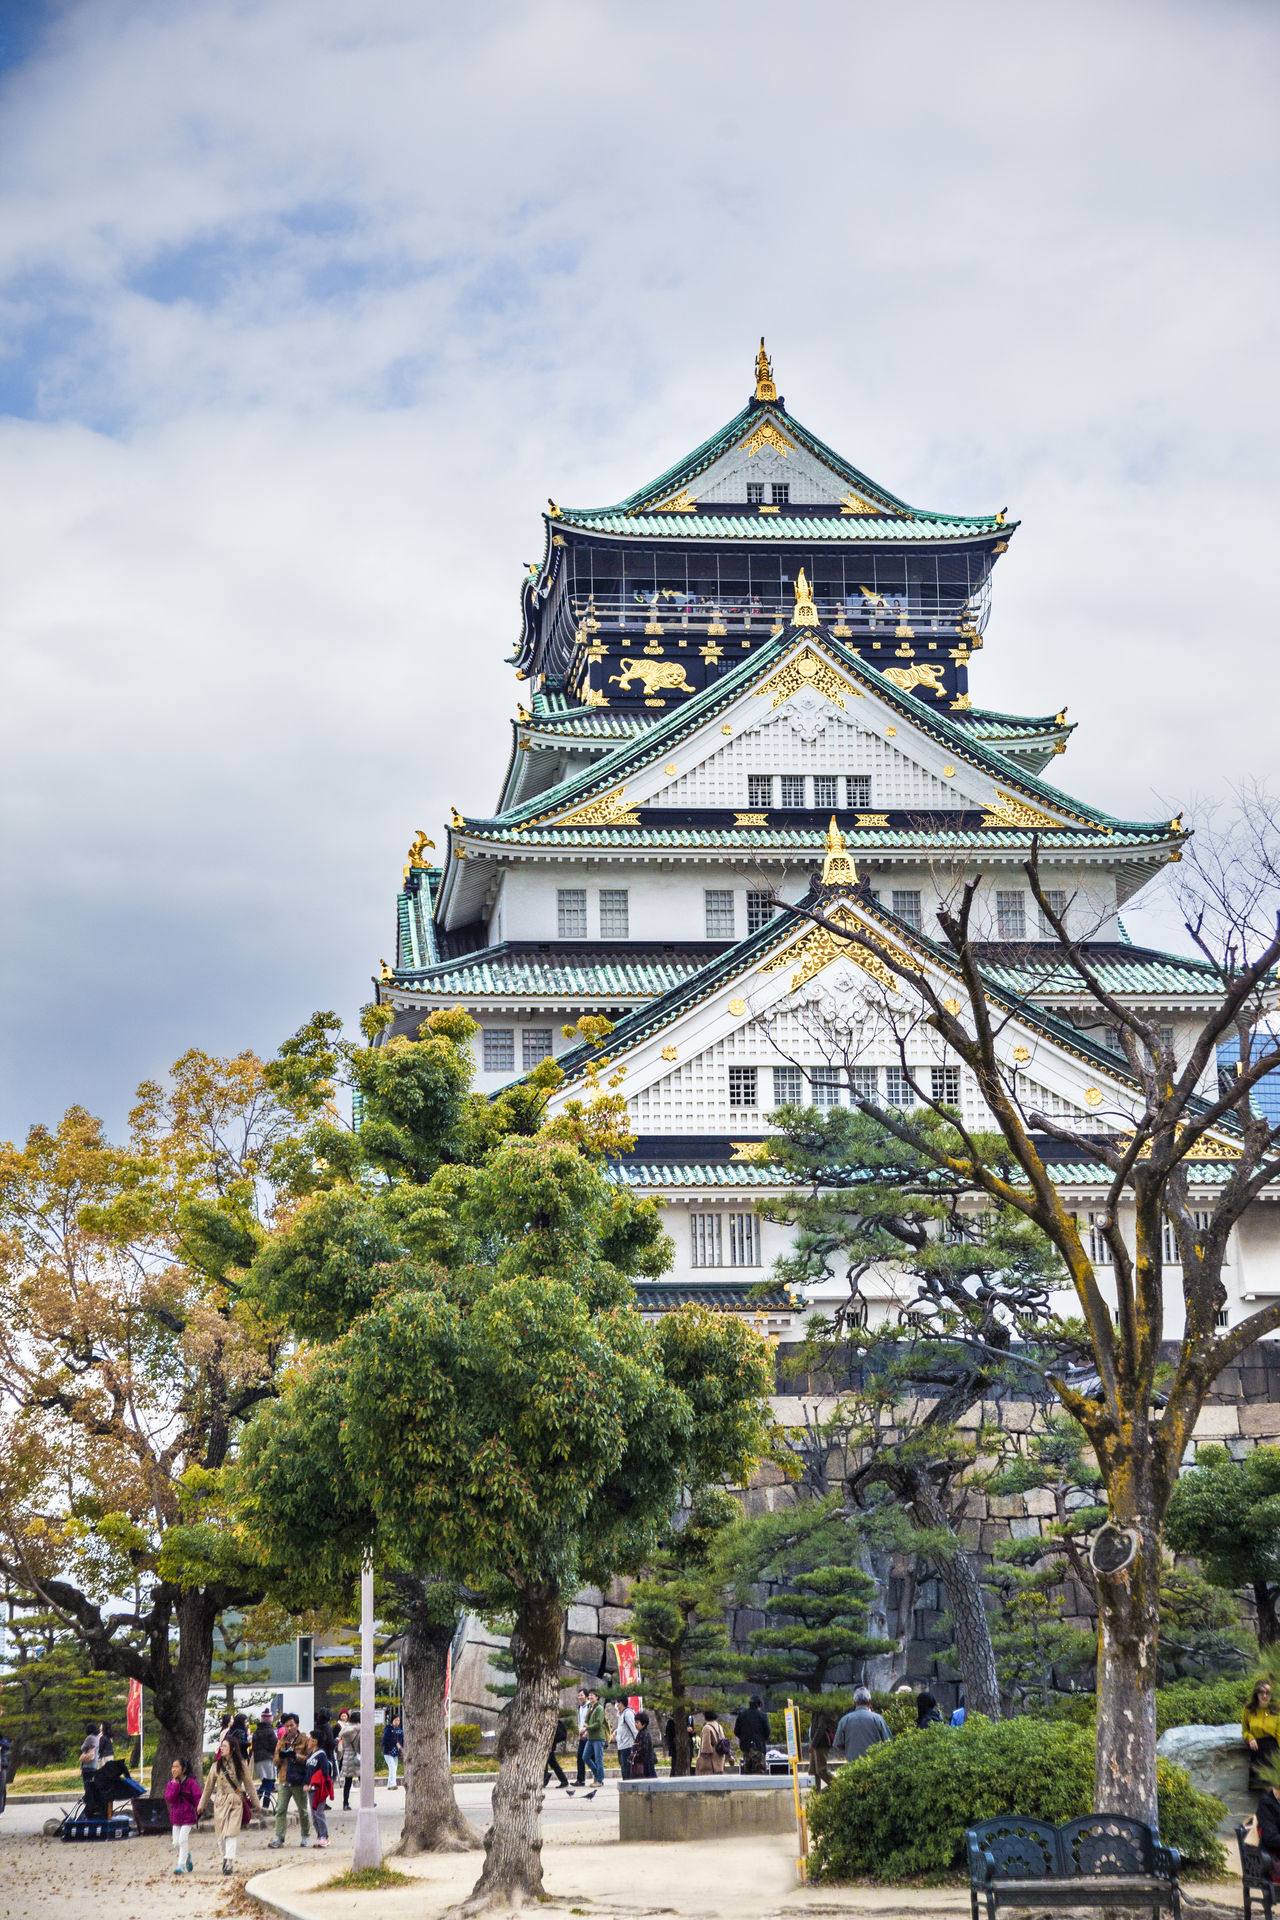 Ultimate Japan Castle Tower Famous Tourist Attractions OSAKA Osaka Castle Vertical Composition Architecture Built Structure City City Life Cloud Cloud - Sky Day Famous Place History Japan Leisure Activity Lifestyles Outdoors Relic Sky Tourism Tourist Travel Destinations Tree Ultimate Japan